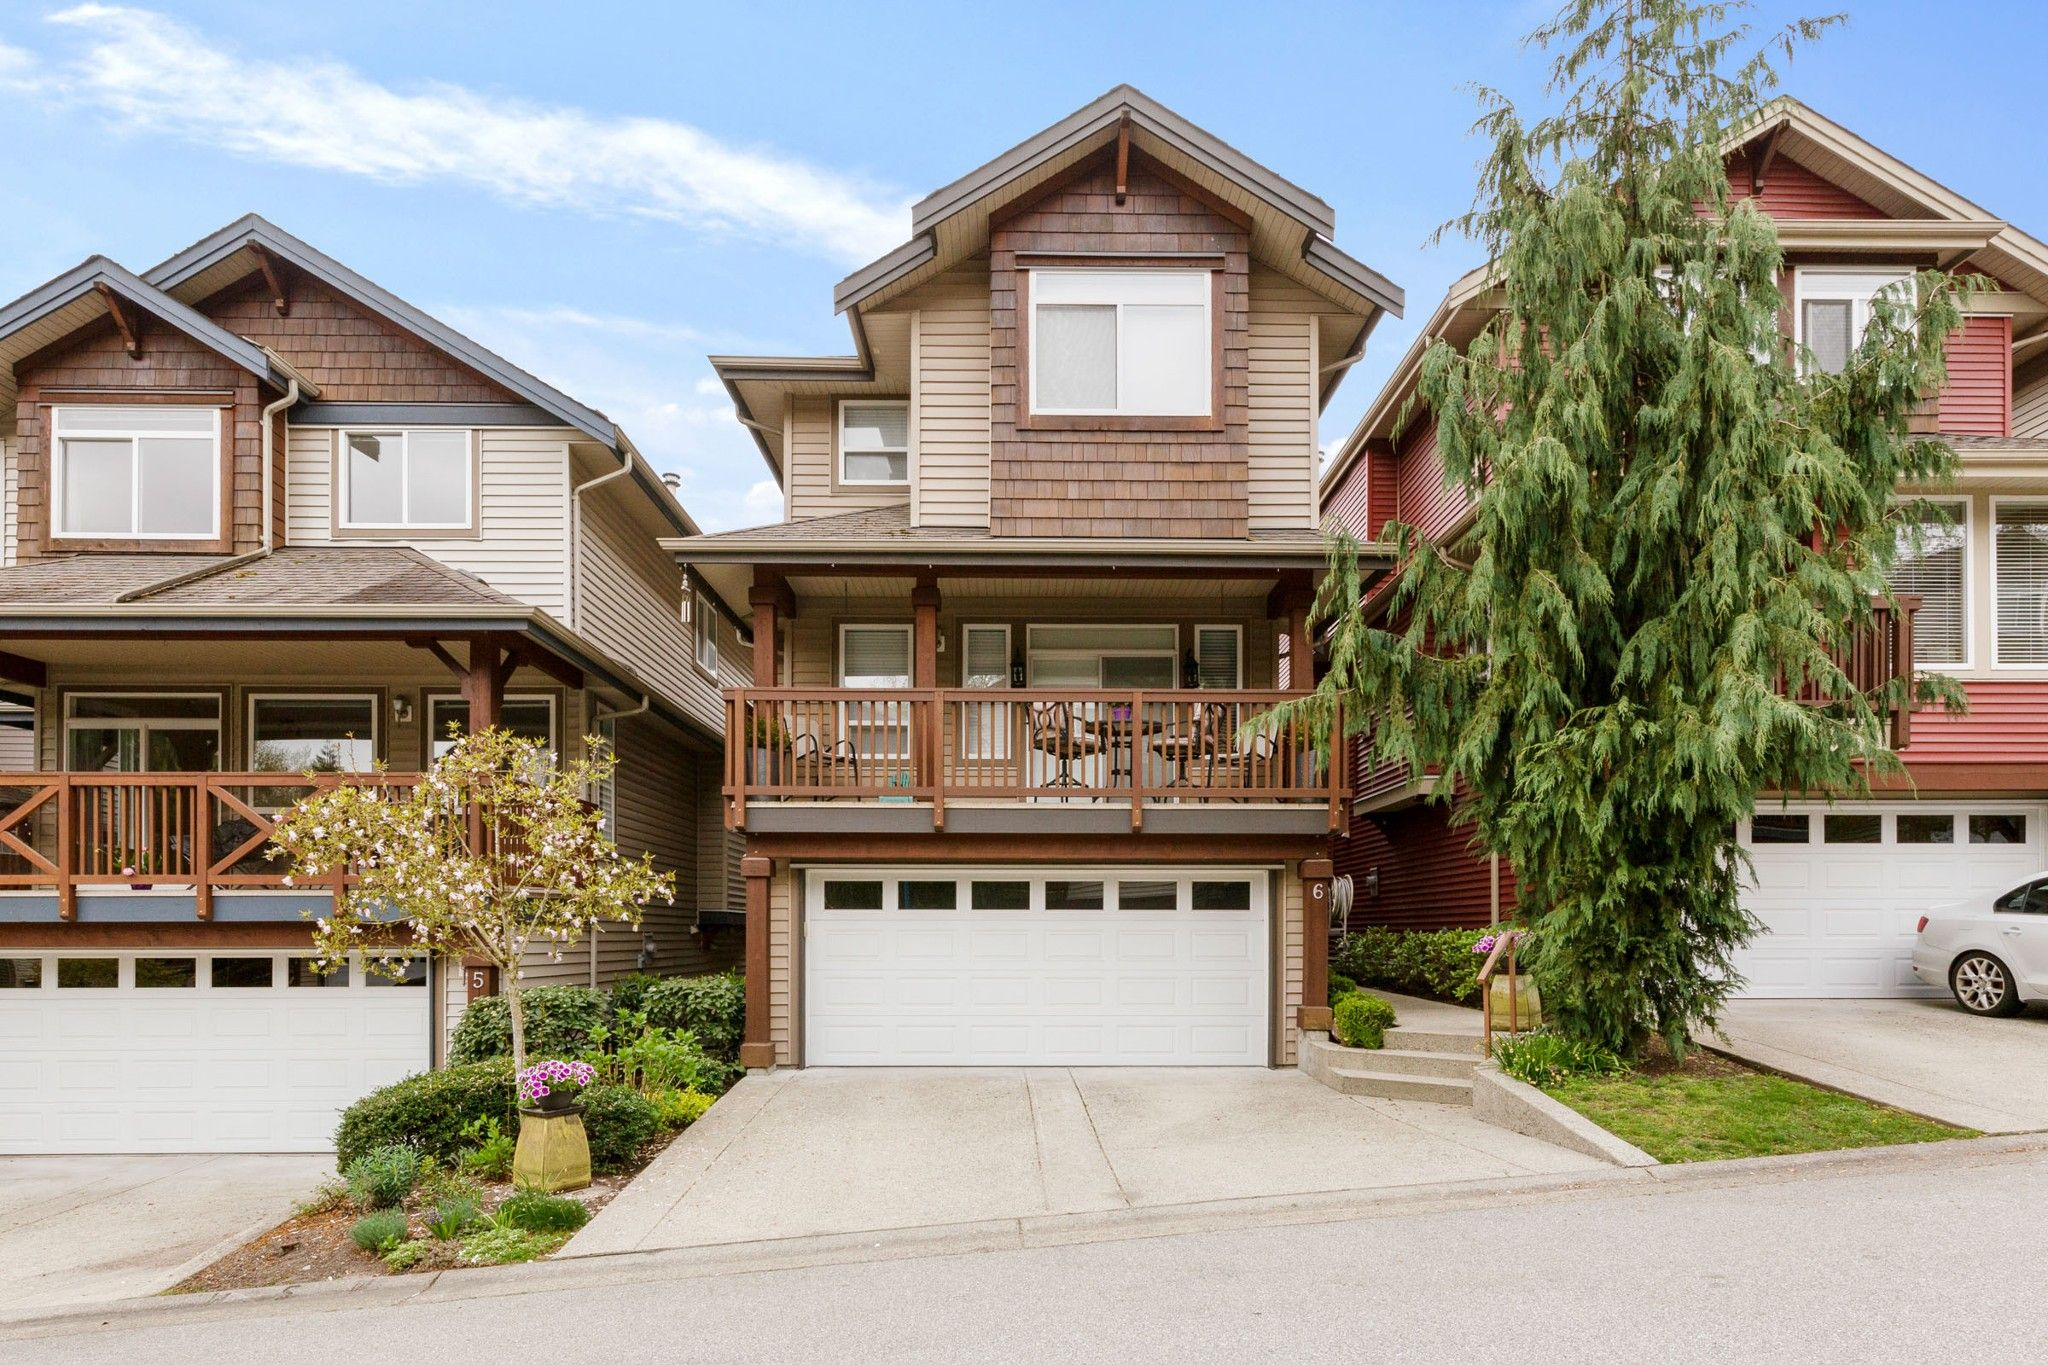 Main Photo: 6 2281 ARGUE Street in Port Coquitlam: Citadel PQ House for sale : MLS®# R2571855